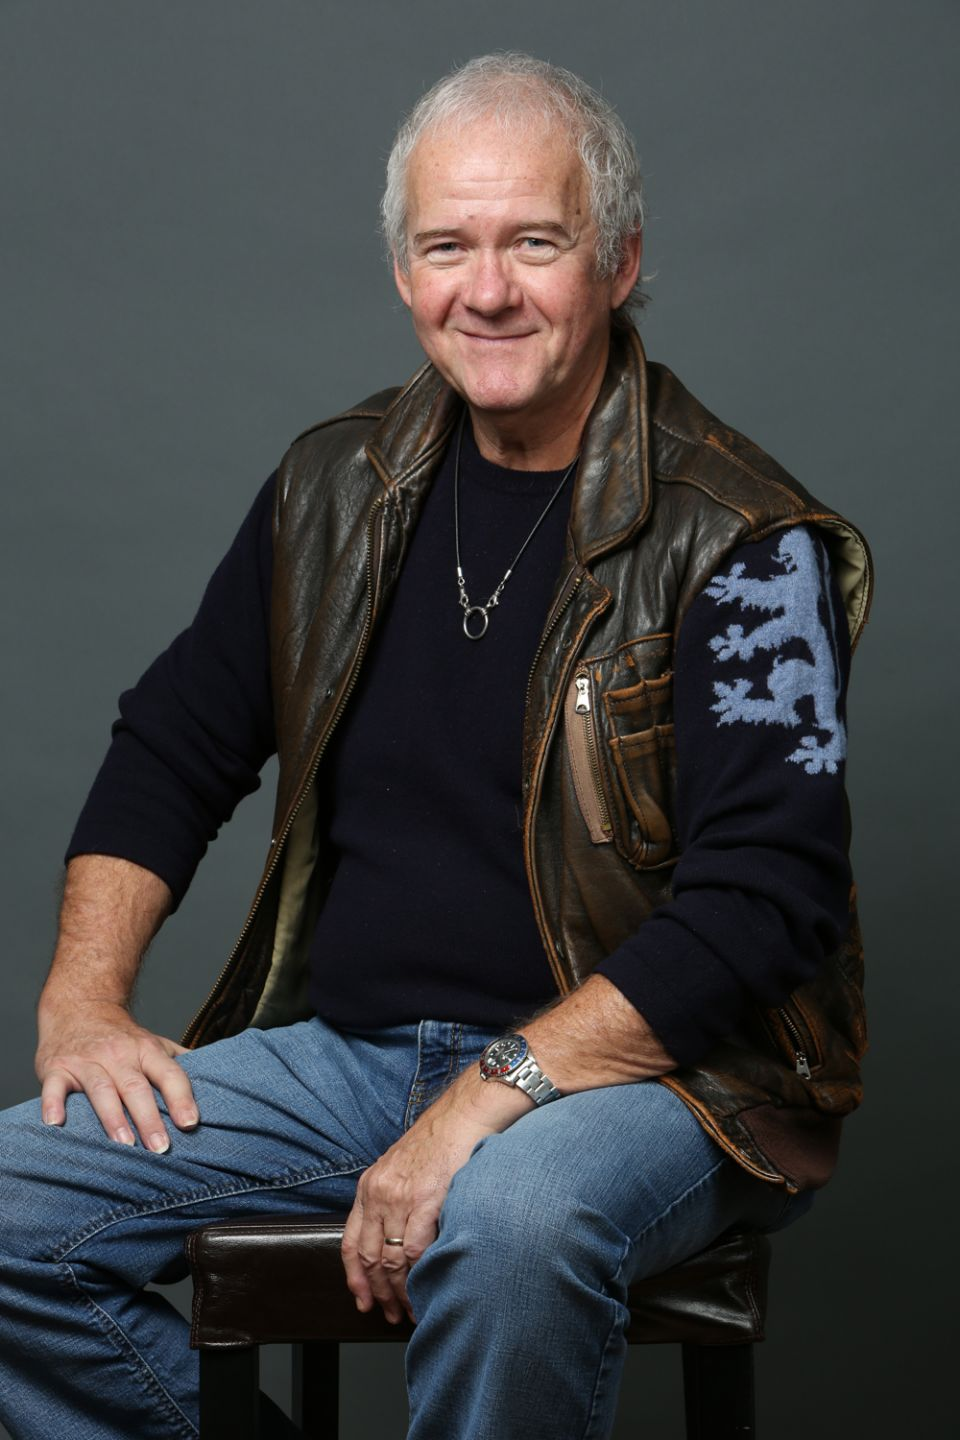 Smiling Murray McLauchlan